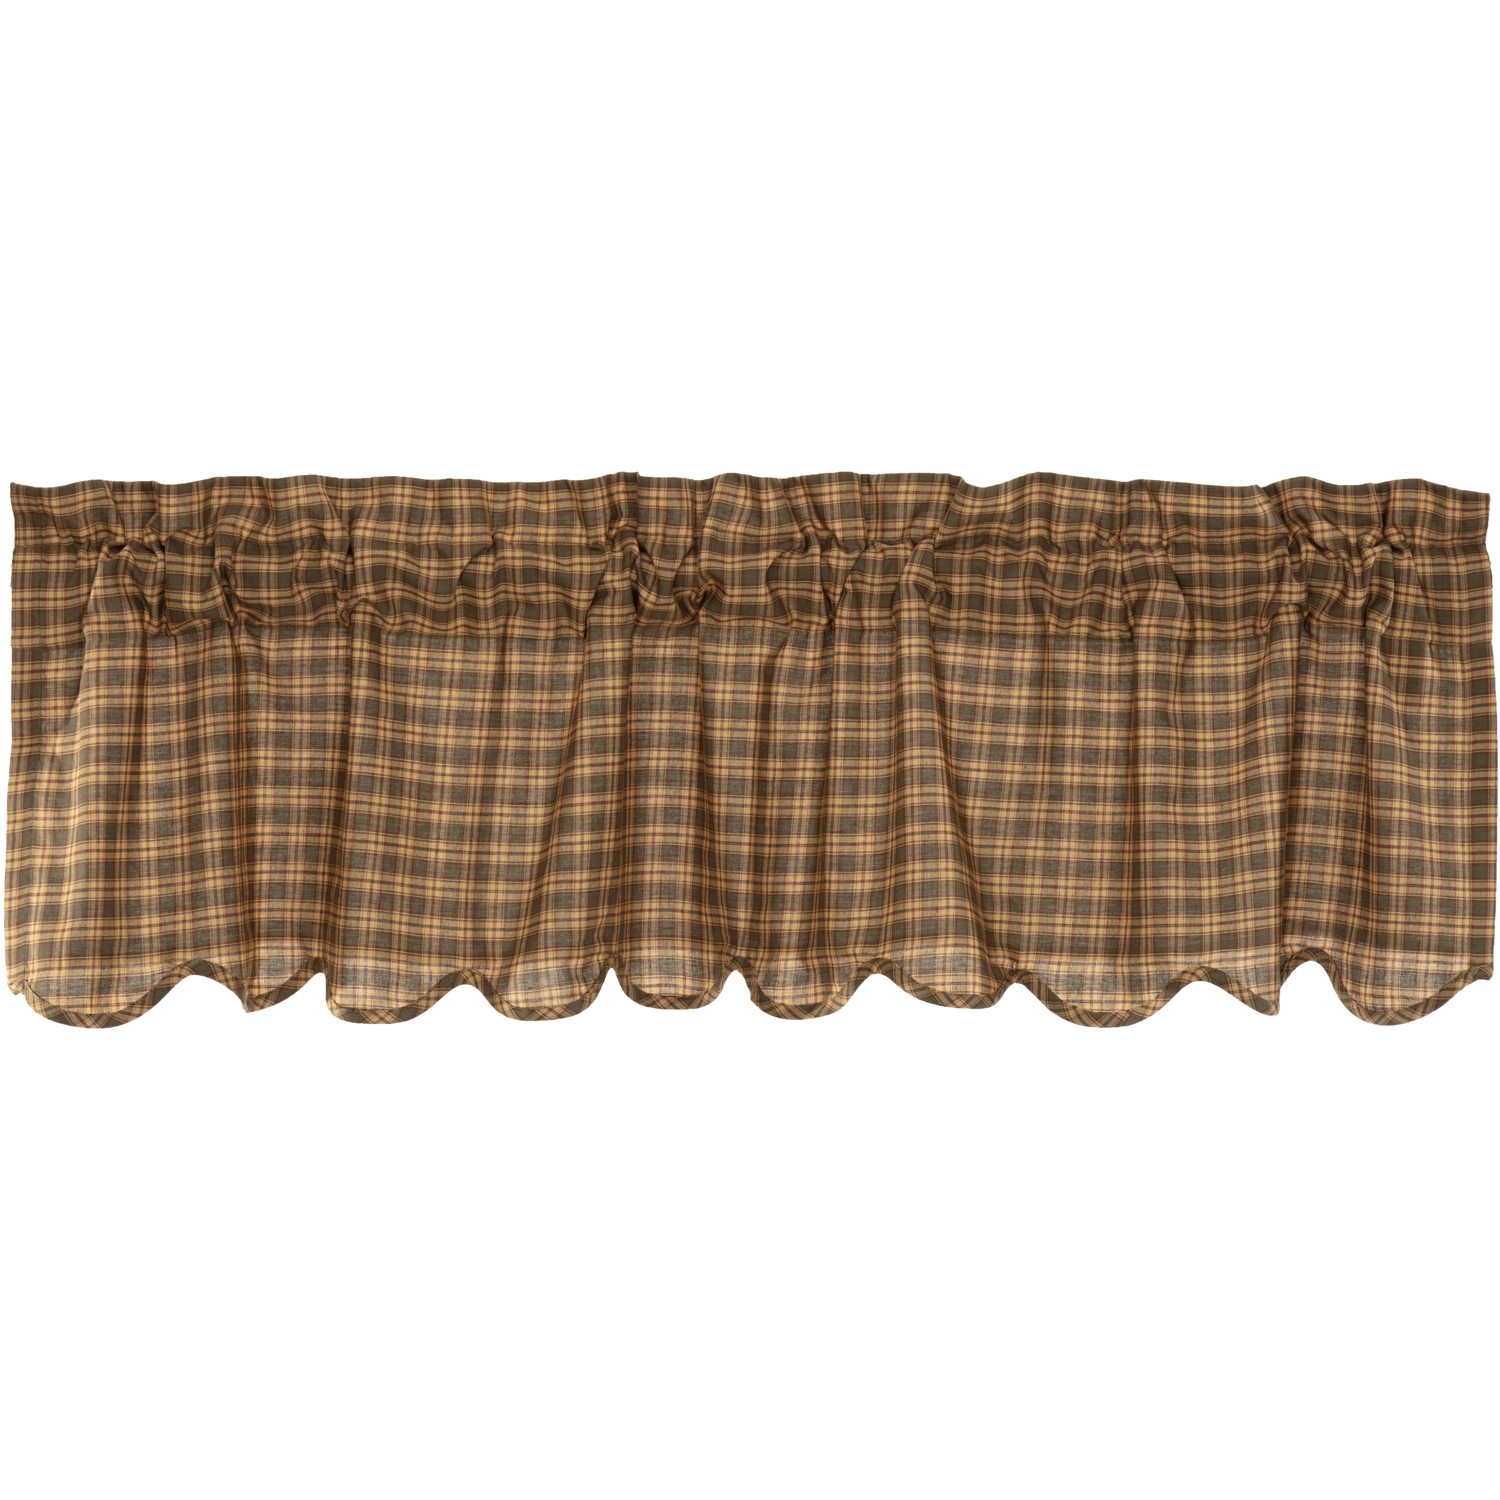 Cedar Ridge Valance Scalloped 16x60